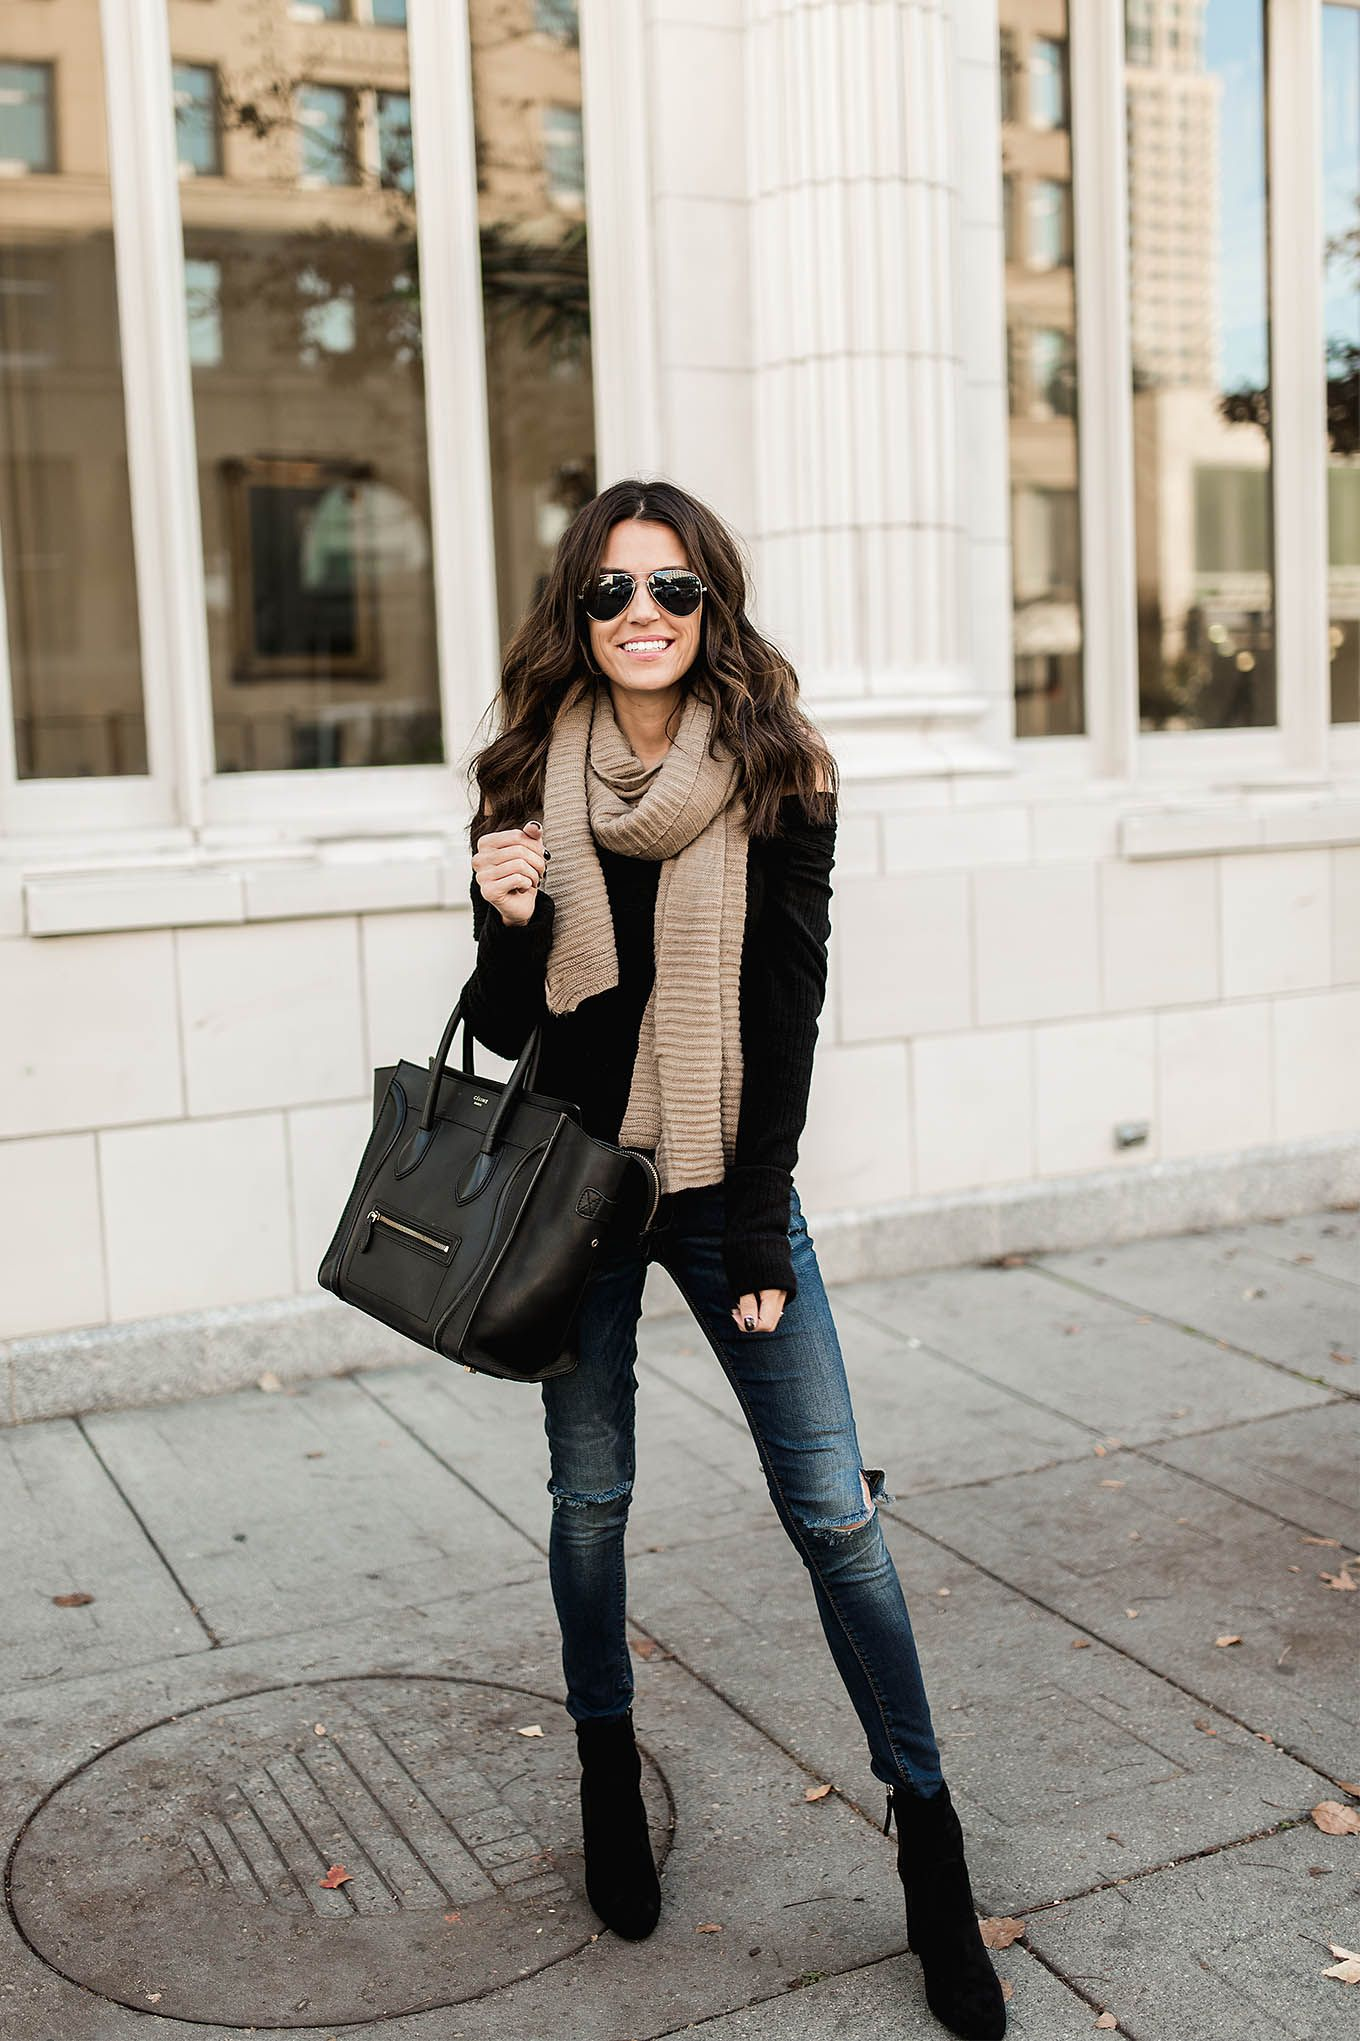 ec769fbb24 Black off the shoulder sweater+distressed denim+black ankle boots+black  tote bag+beige scarf+aviator sunglasses. Fall Casual Outfit 2016. 3 Ways to  Style ...